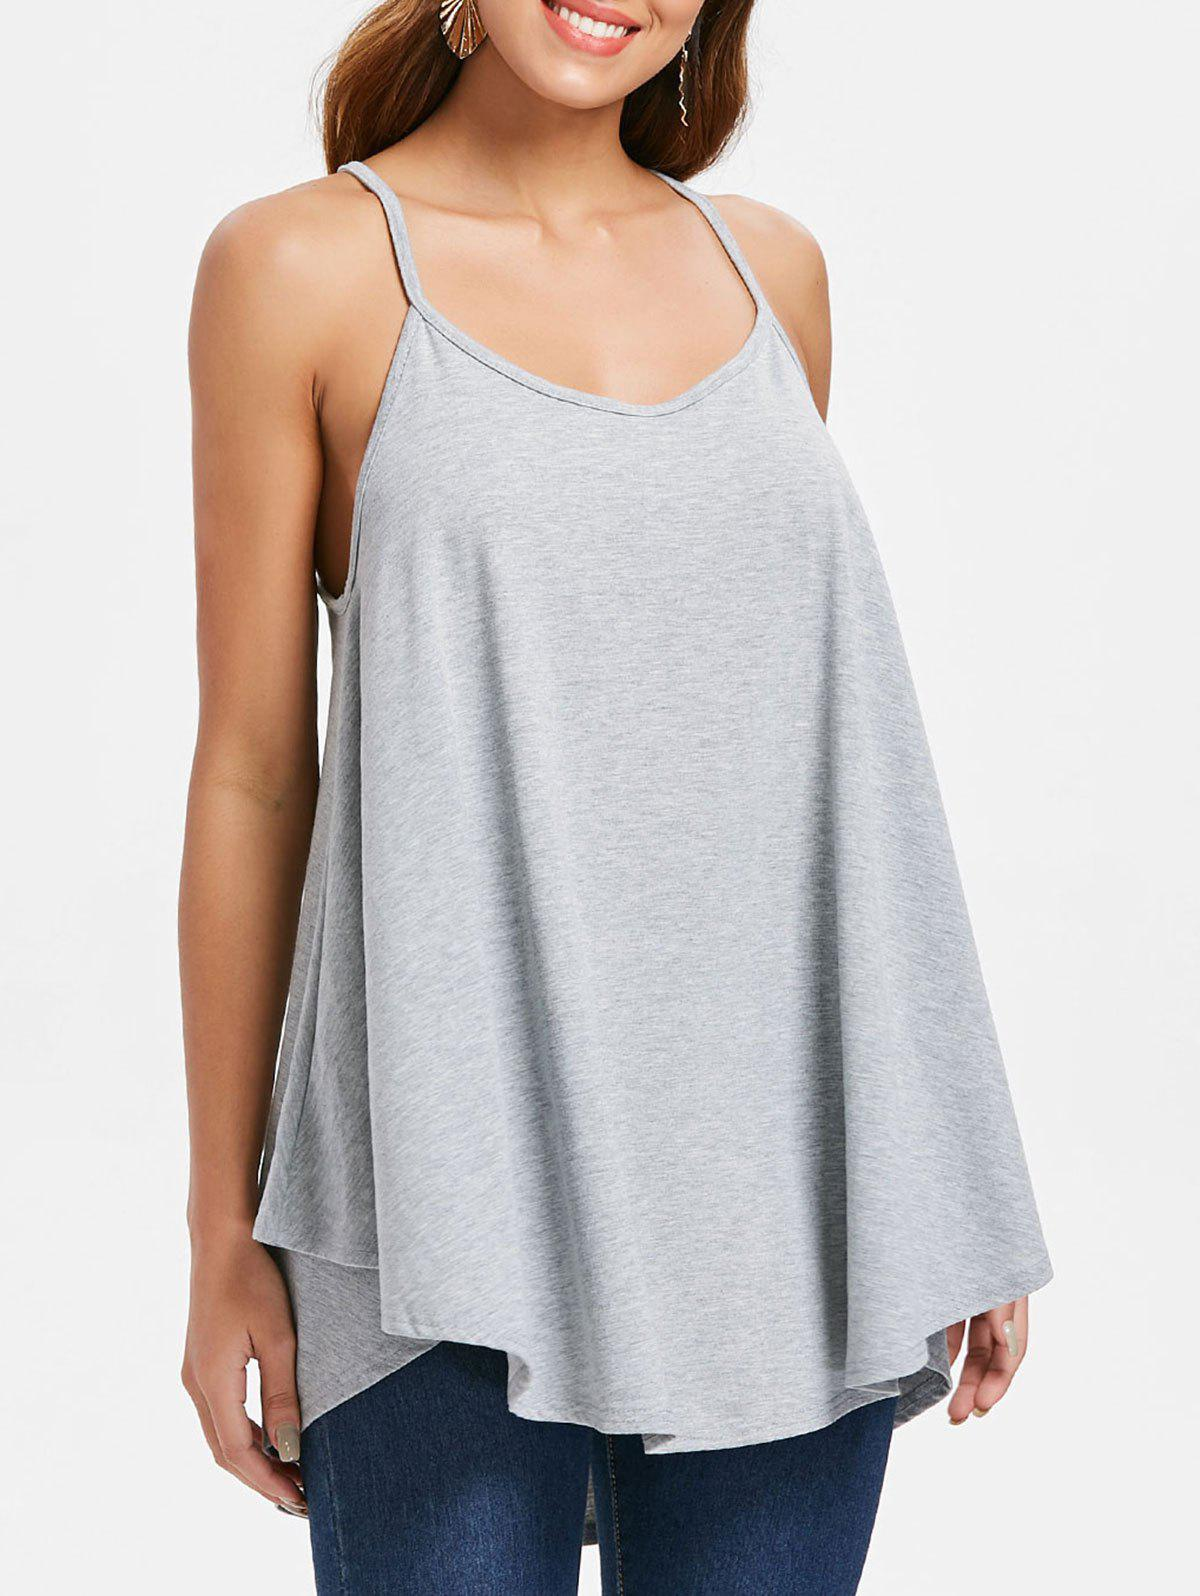 Cami Straps Swing Tank Top - LIGHT GRAY S